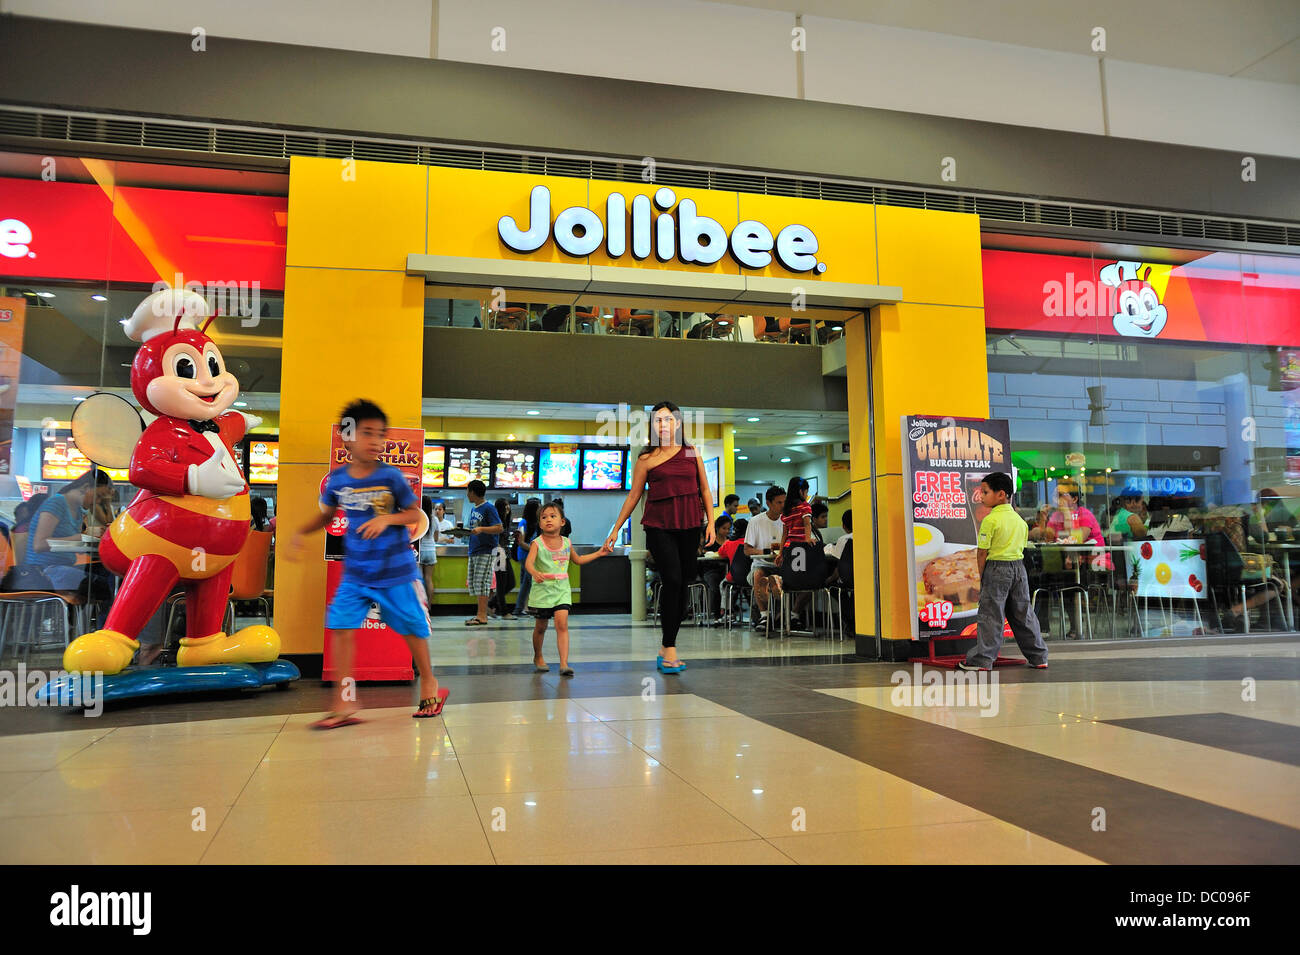 Fast Food Restaurant Franchise In The Philippines